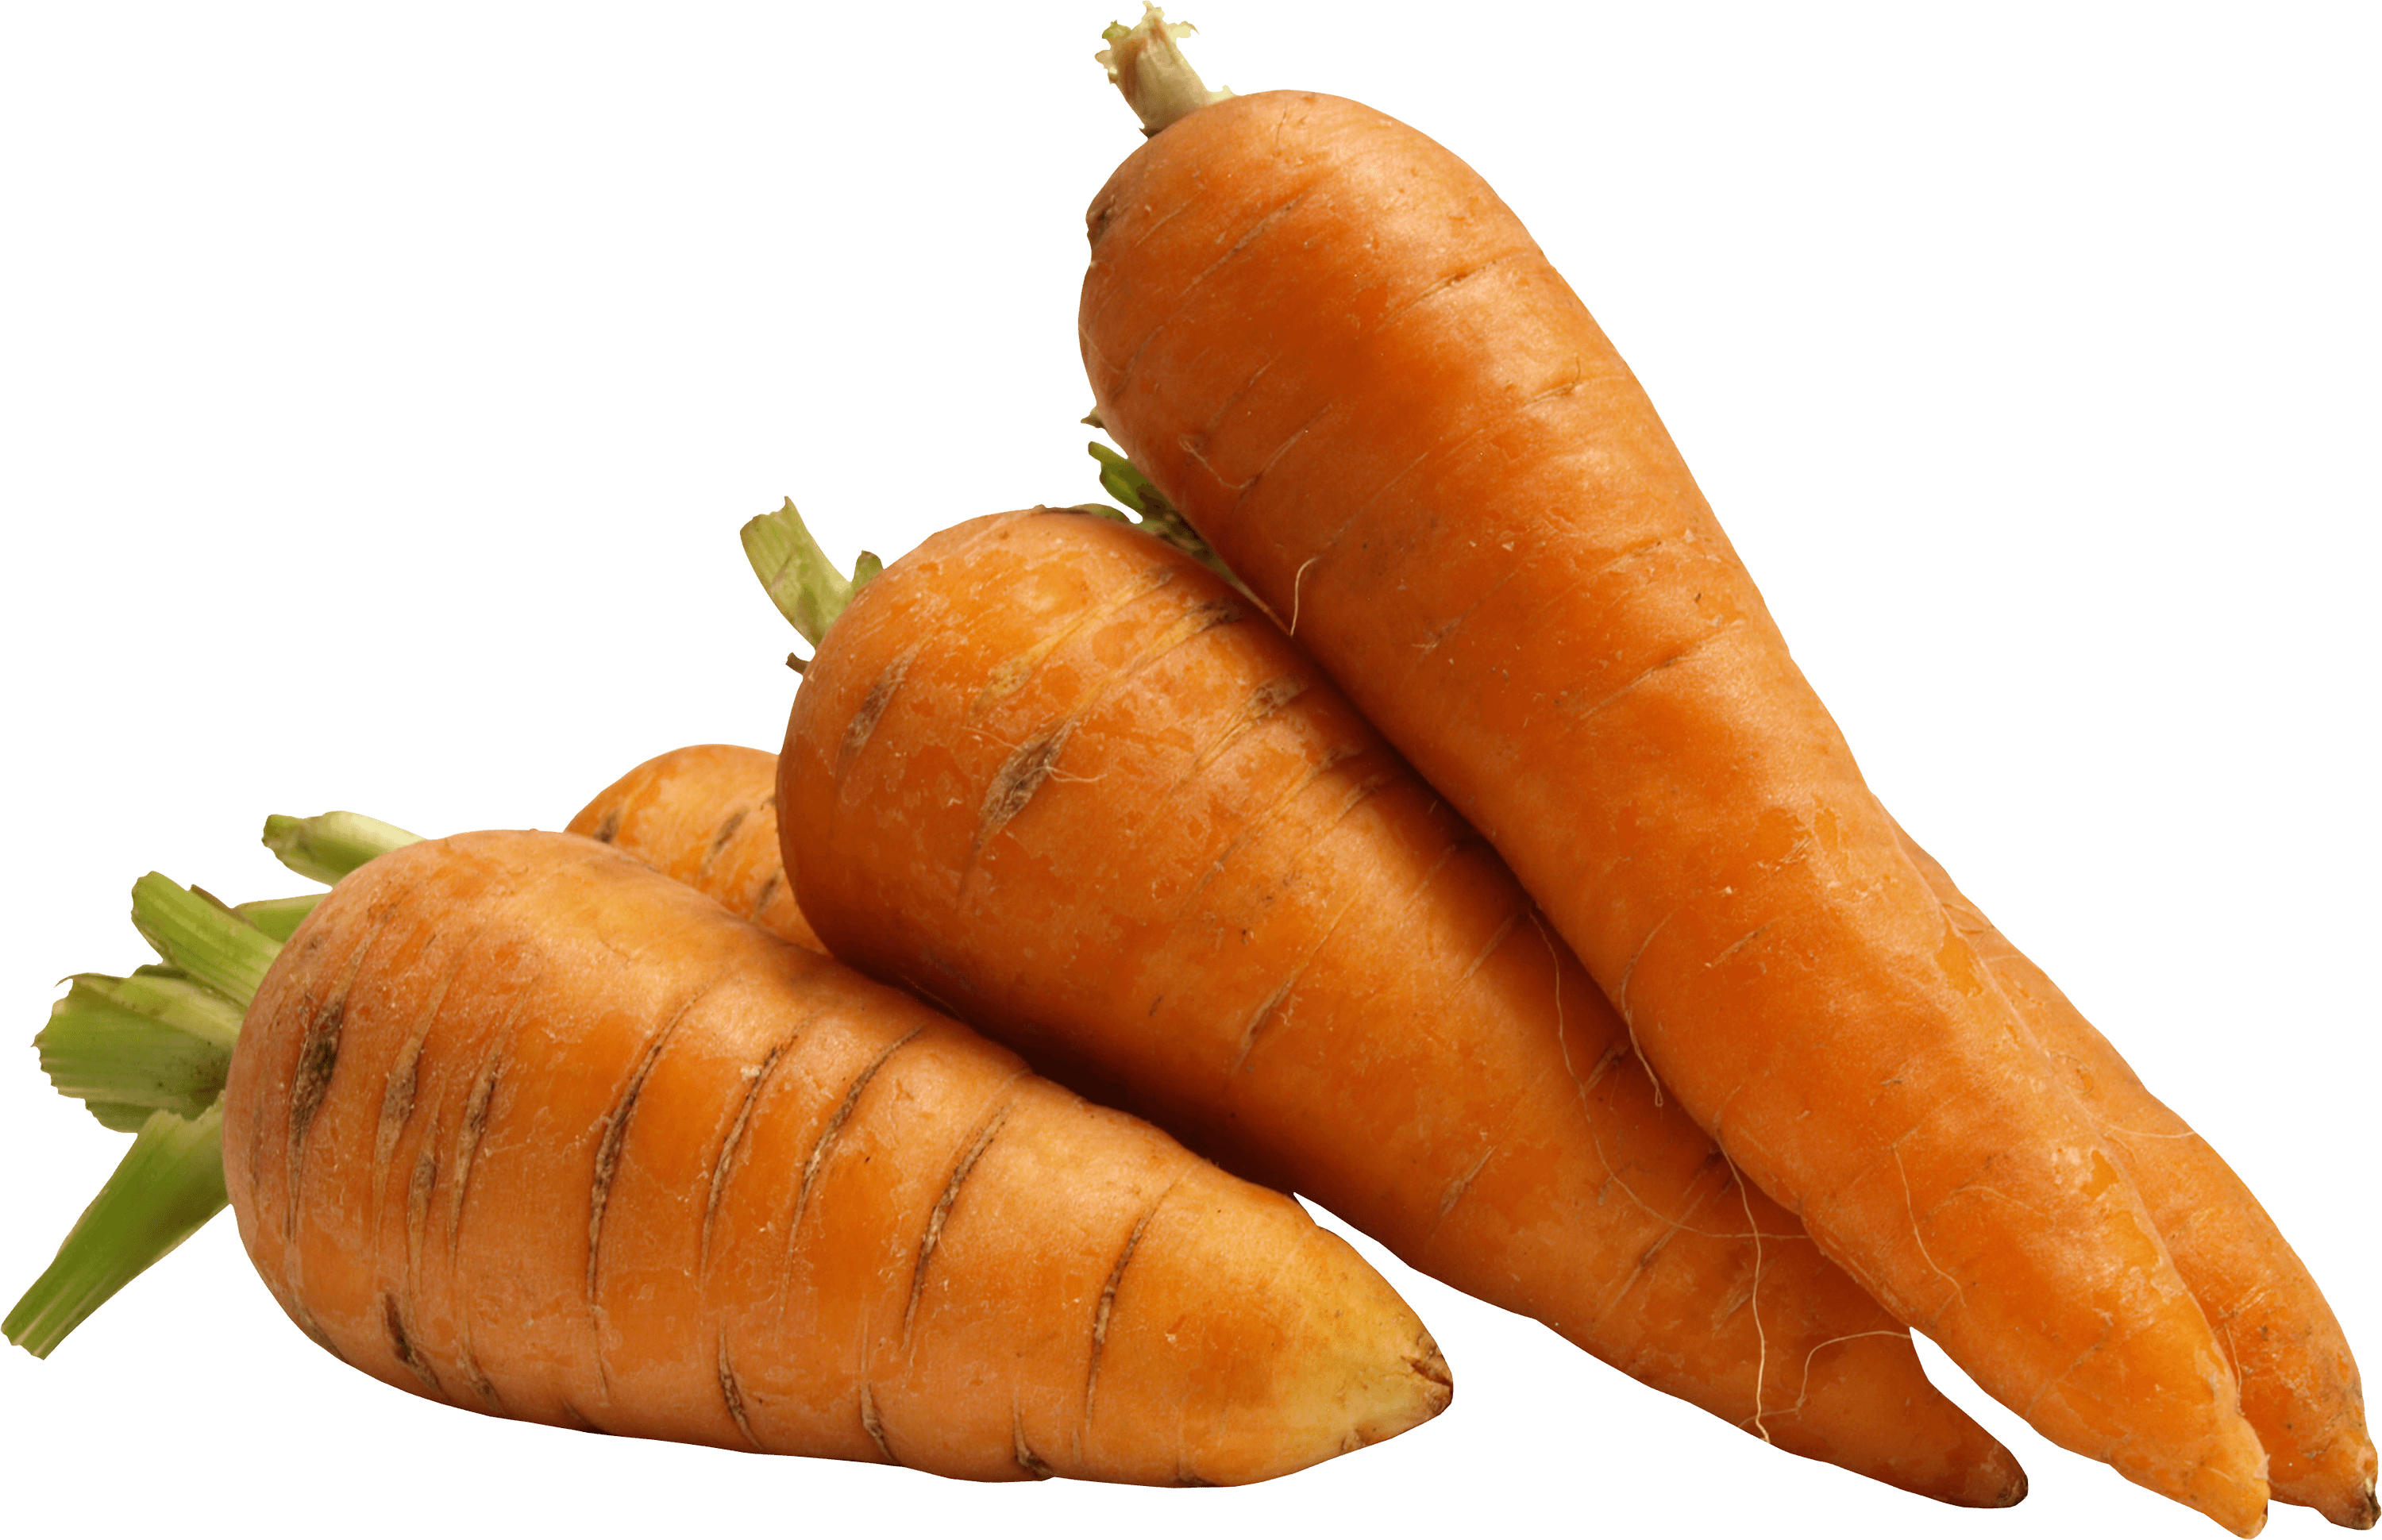 Carrot PNG - 19911